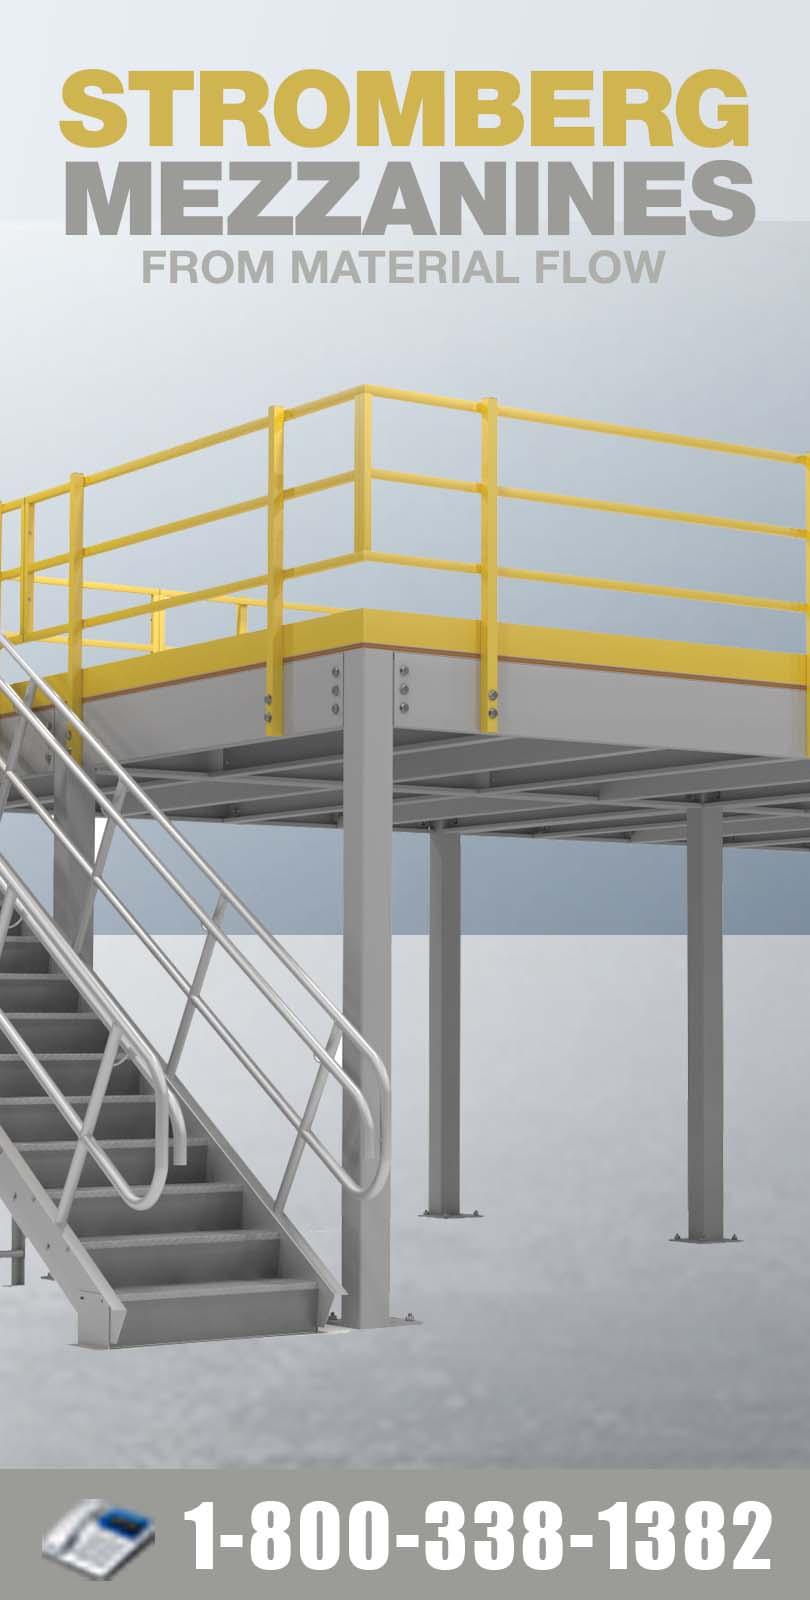 Stromberg Mezzanines from Material Flow